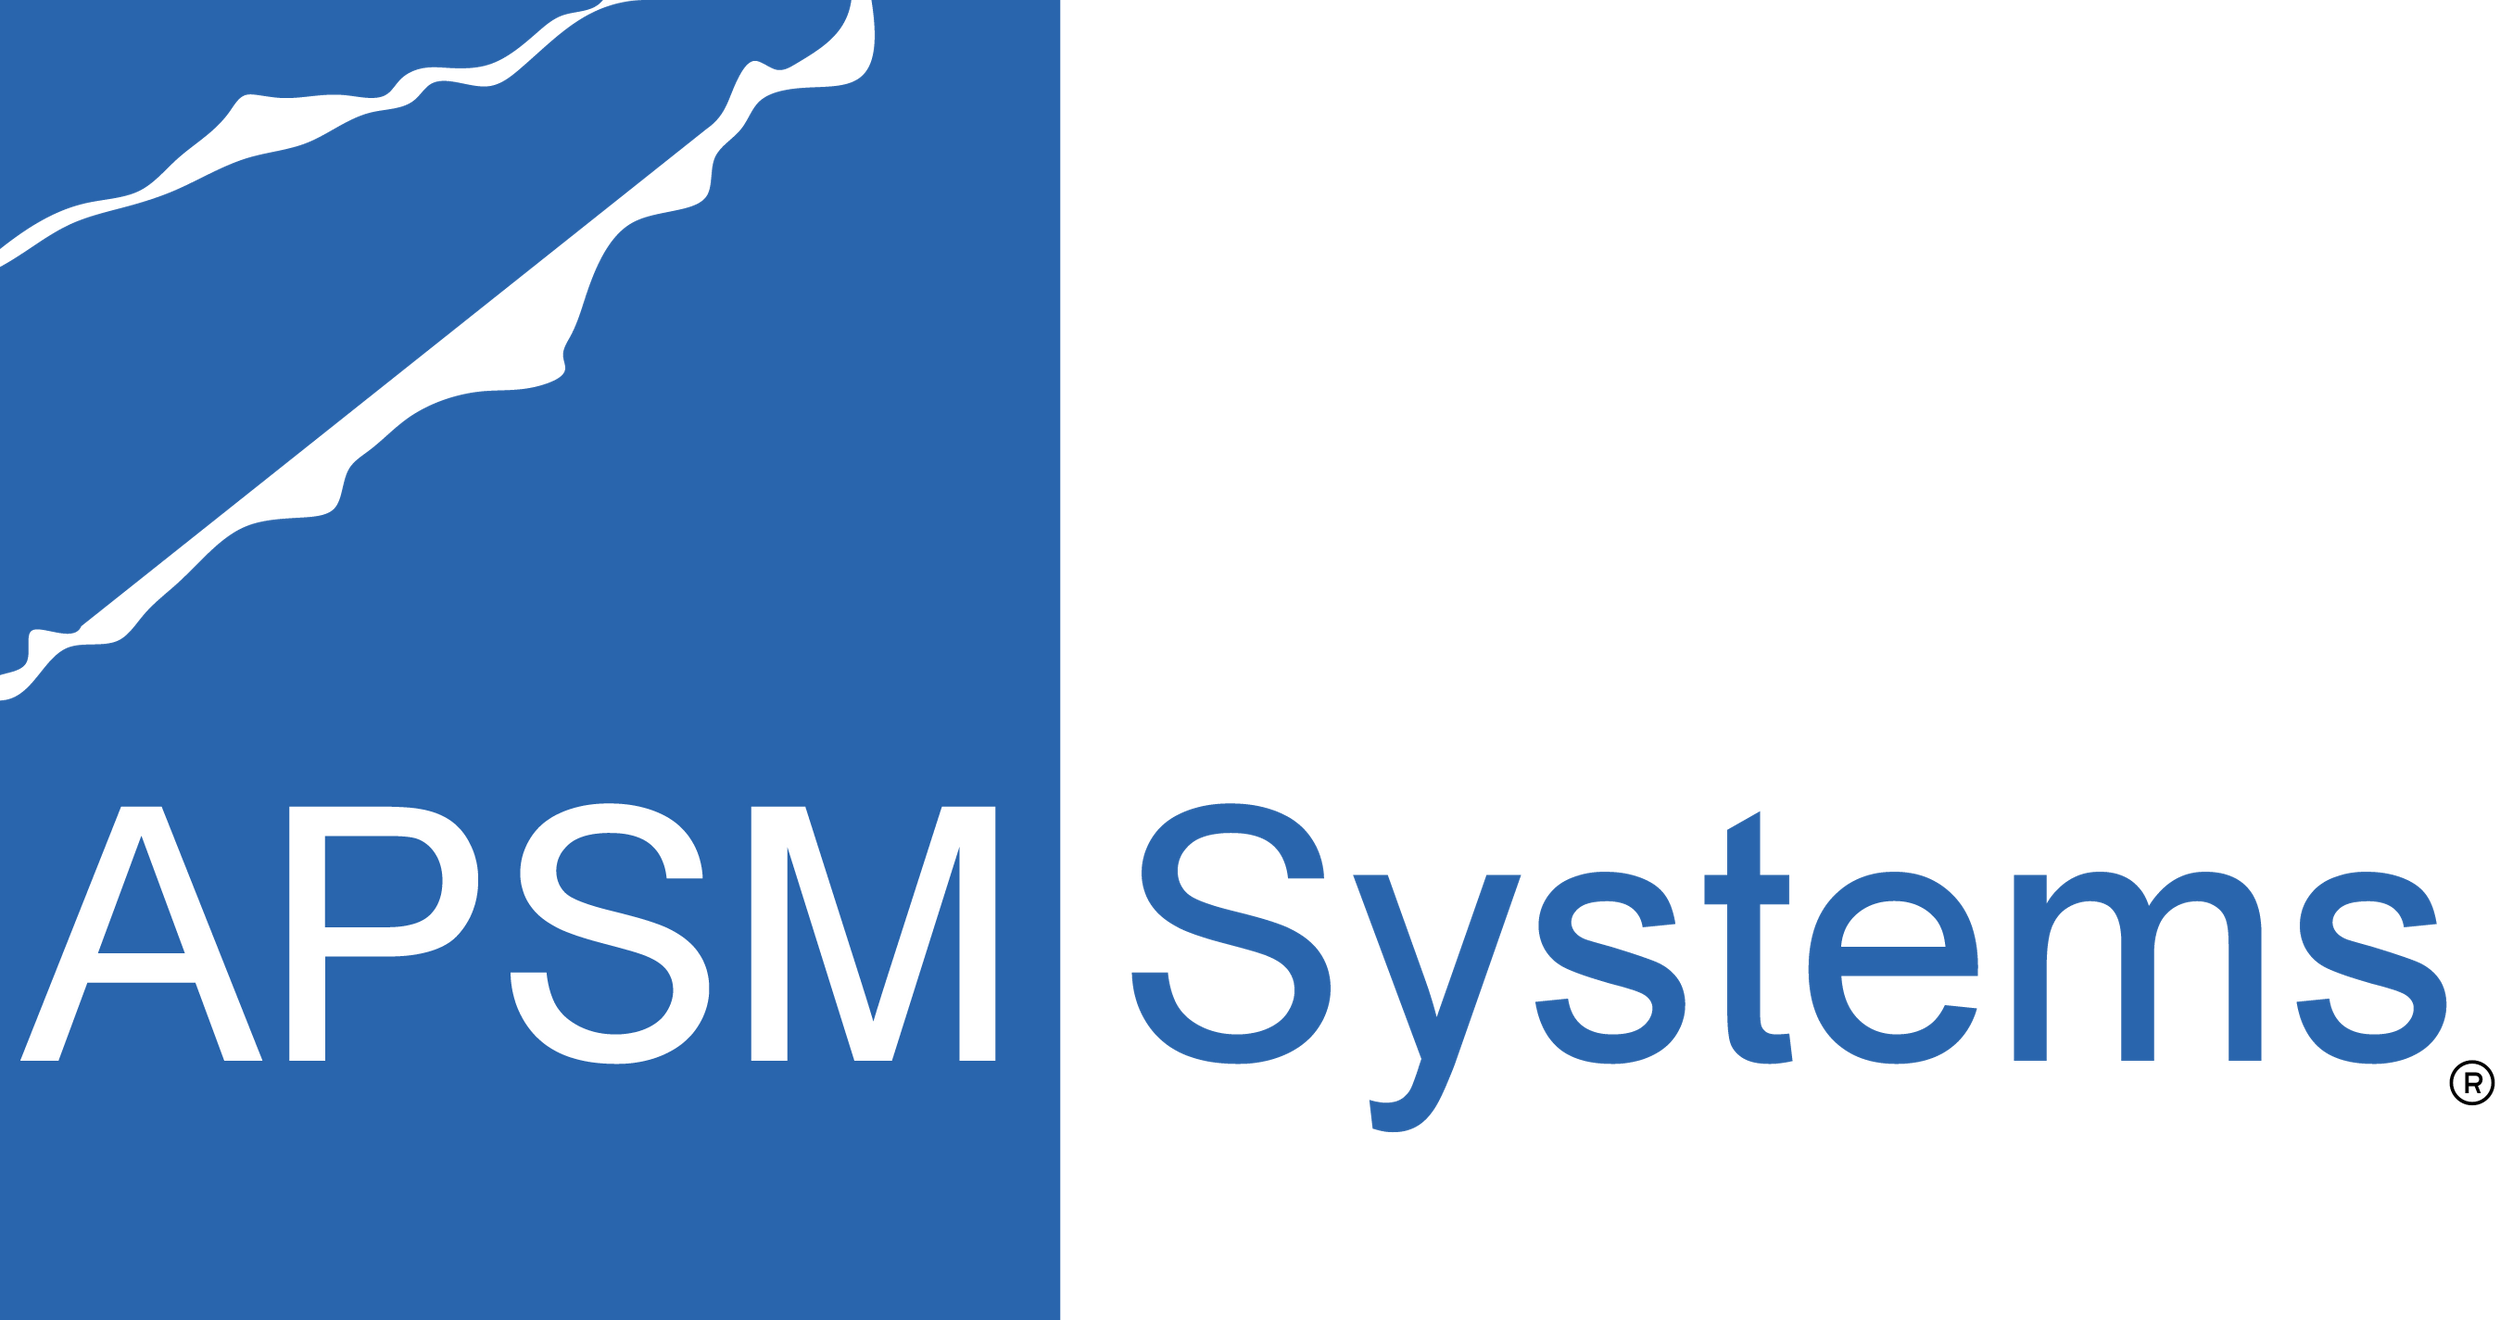 Sheet Metal Fabrication Companies Apsm Systems